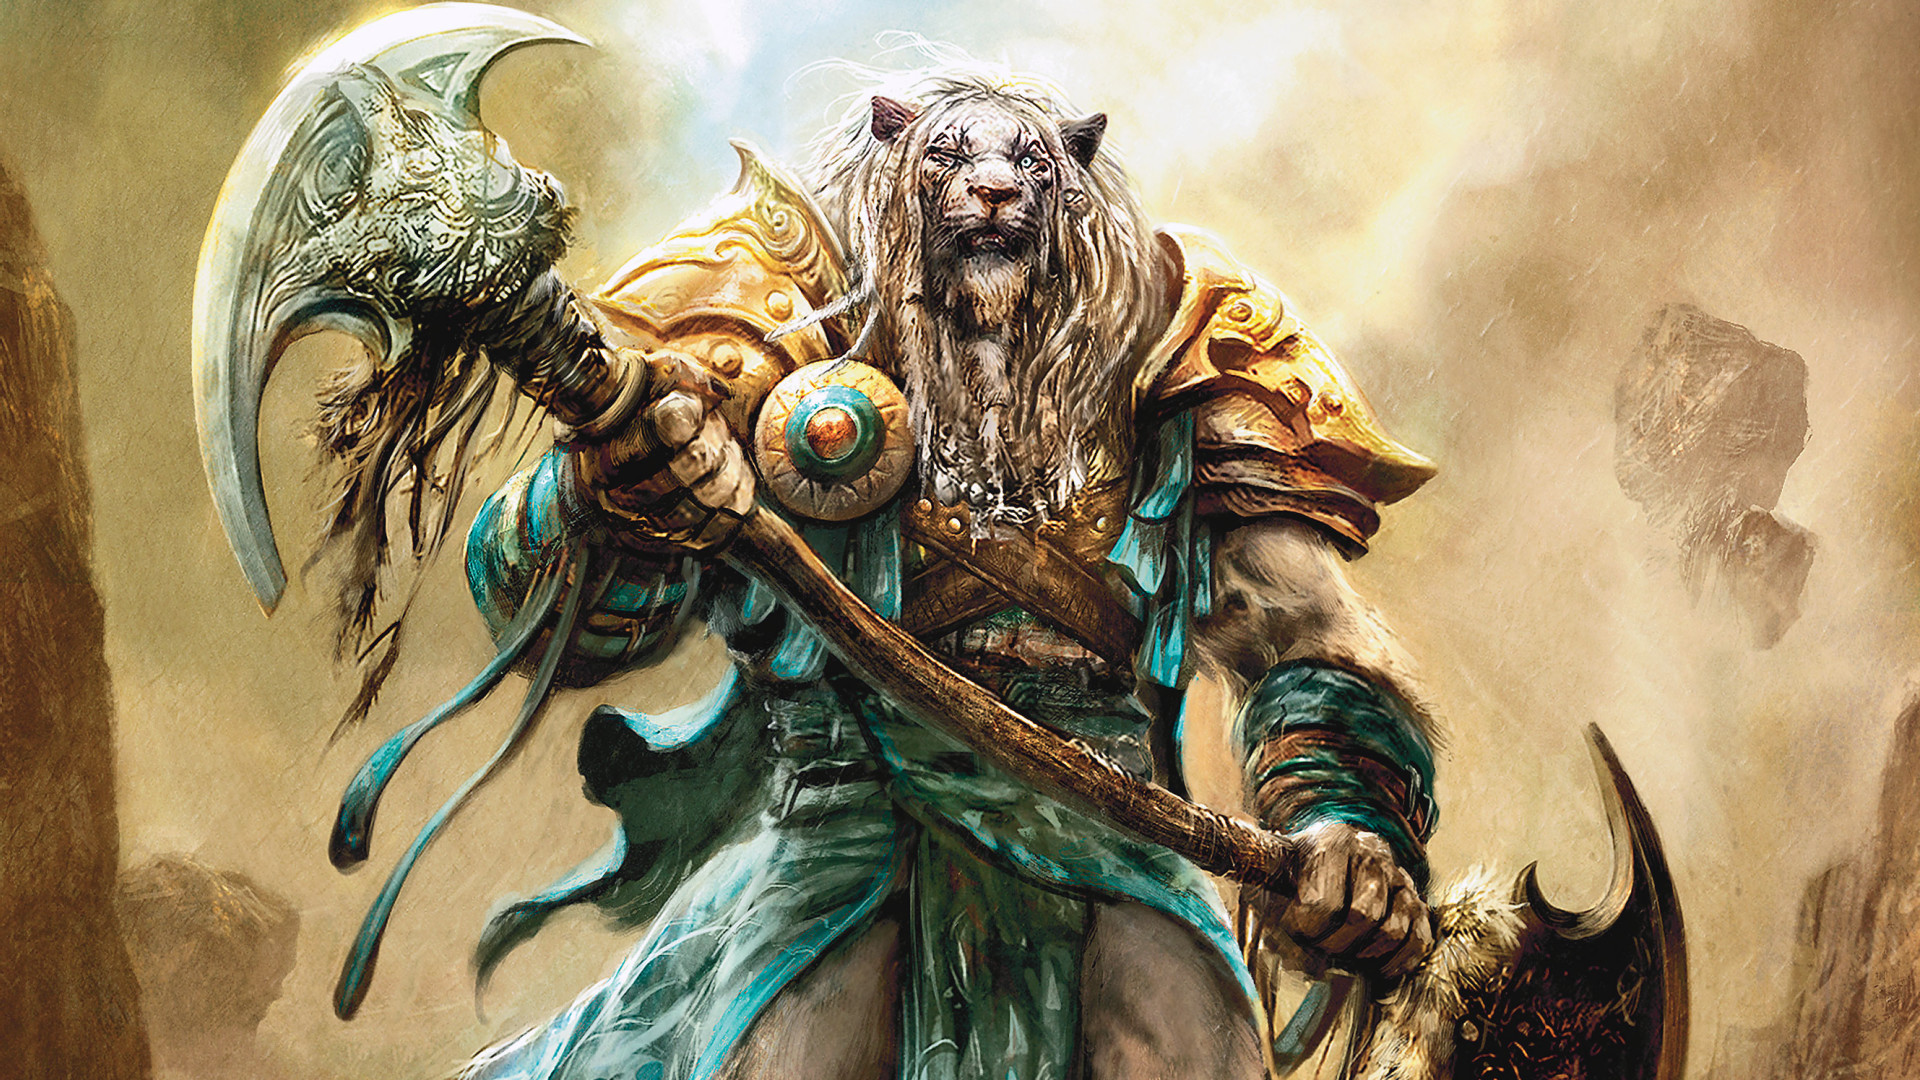 A few Magic: the Gathering Wallpapers